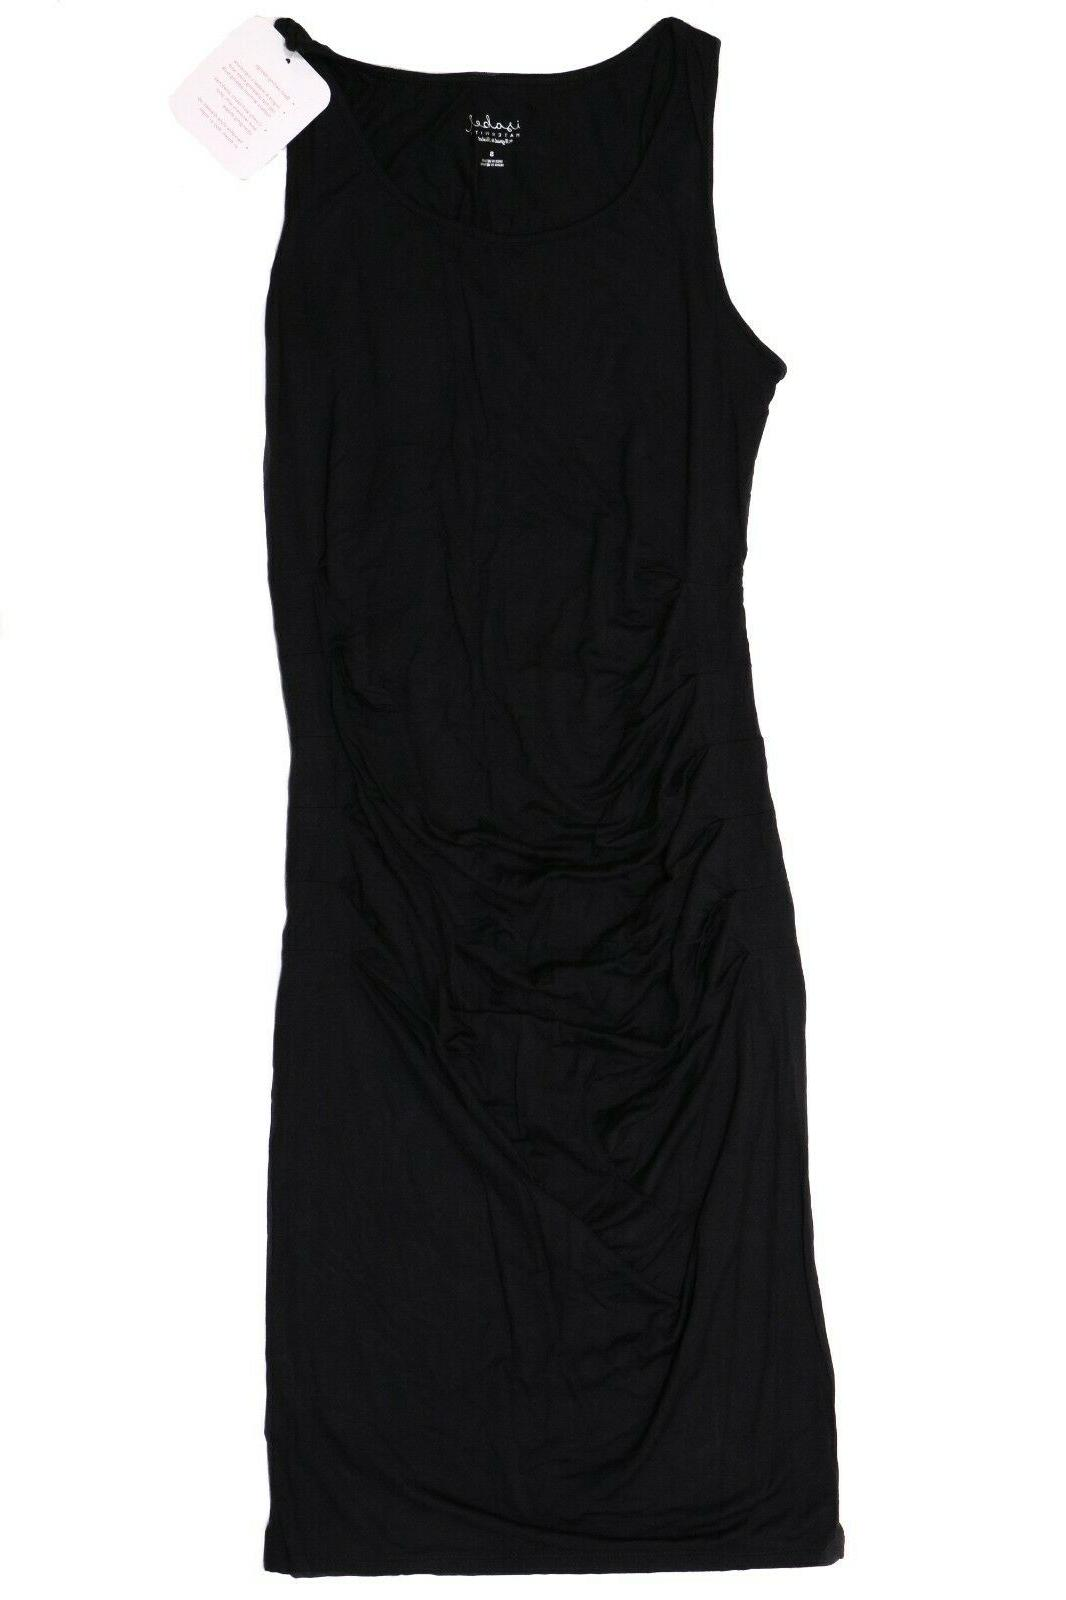 new women s clothes black solid tank